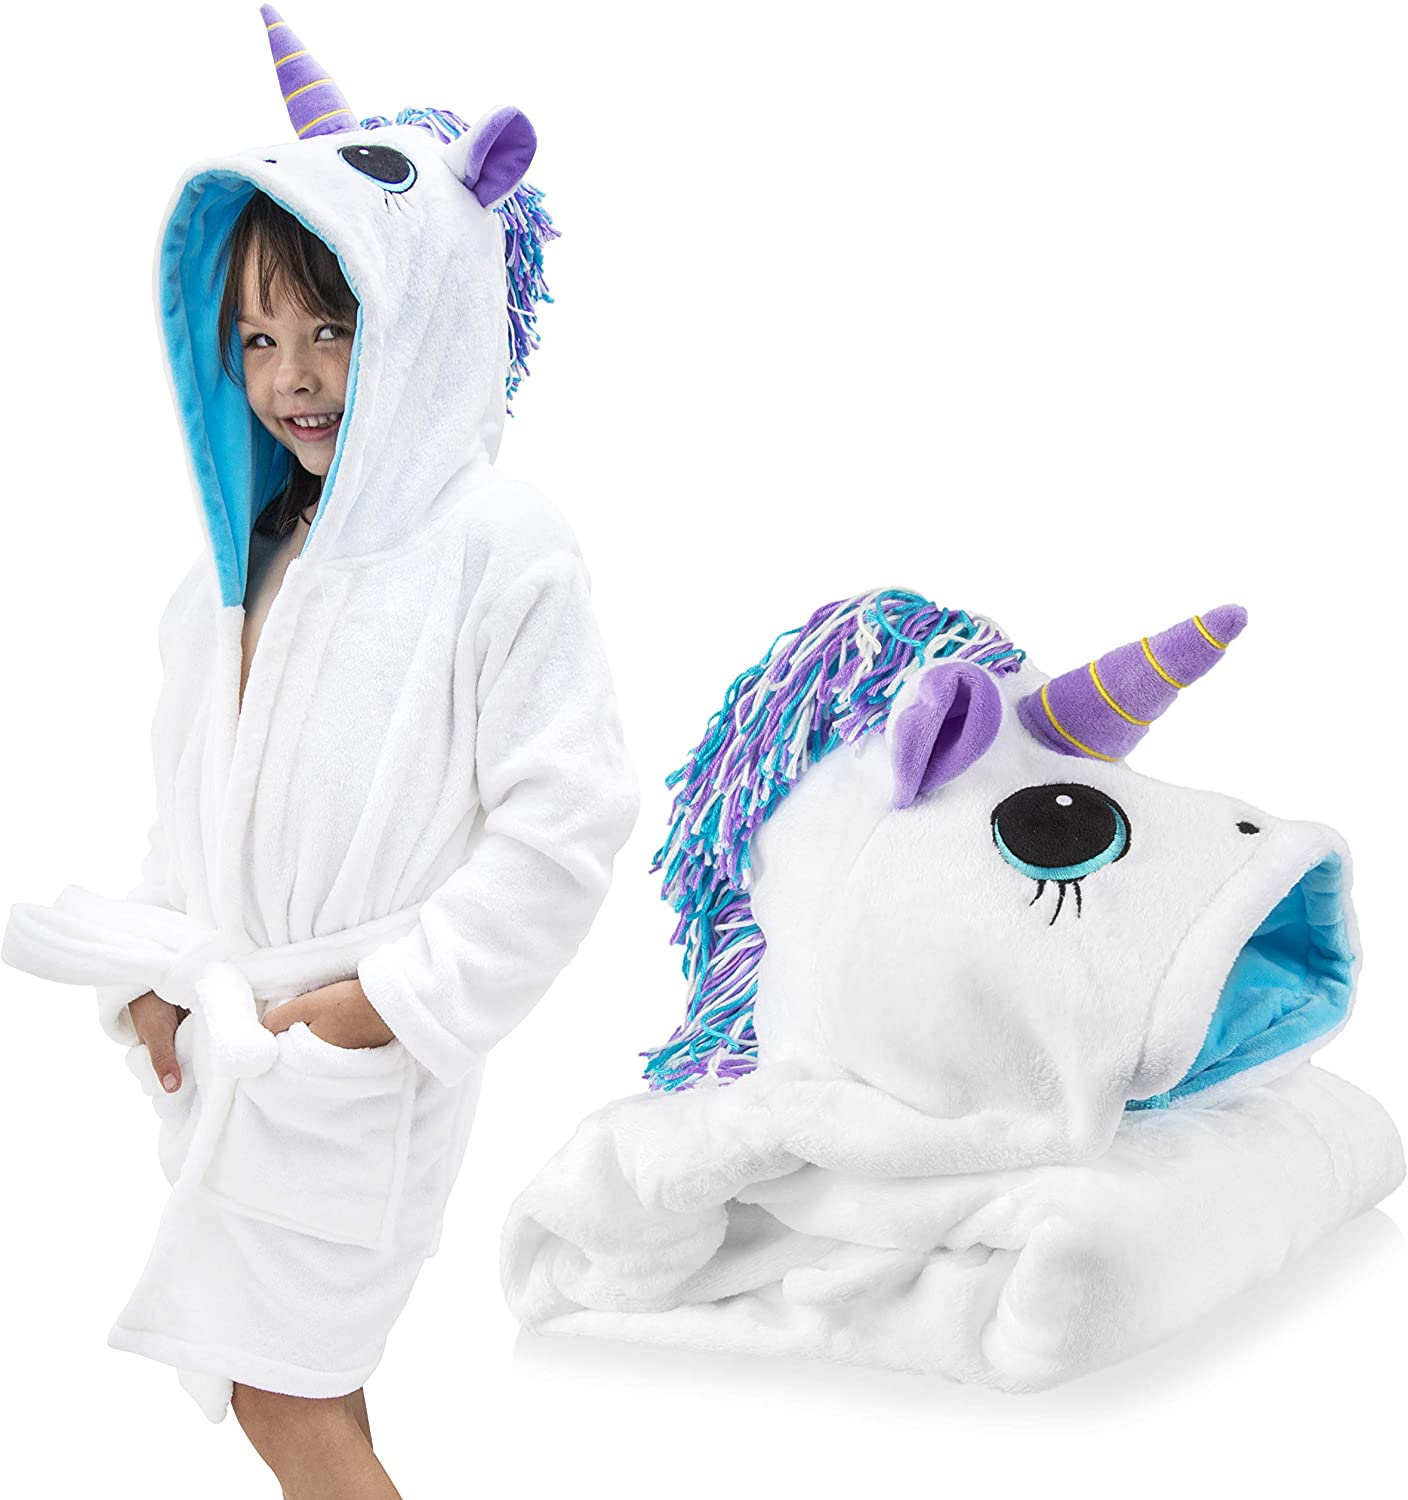 Unicorn Robe for Girls; Cute Super Soft Turquoise Blue, Purple and White Robe